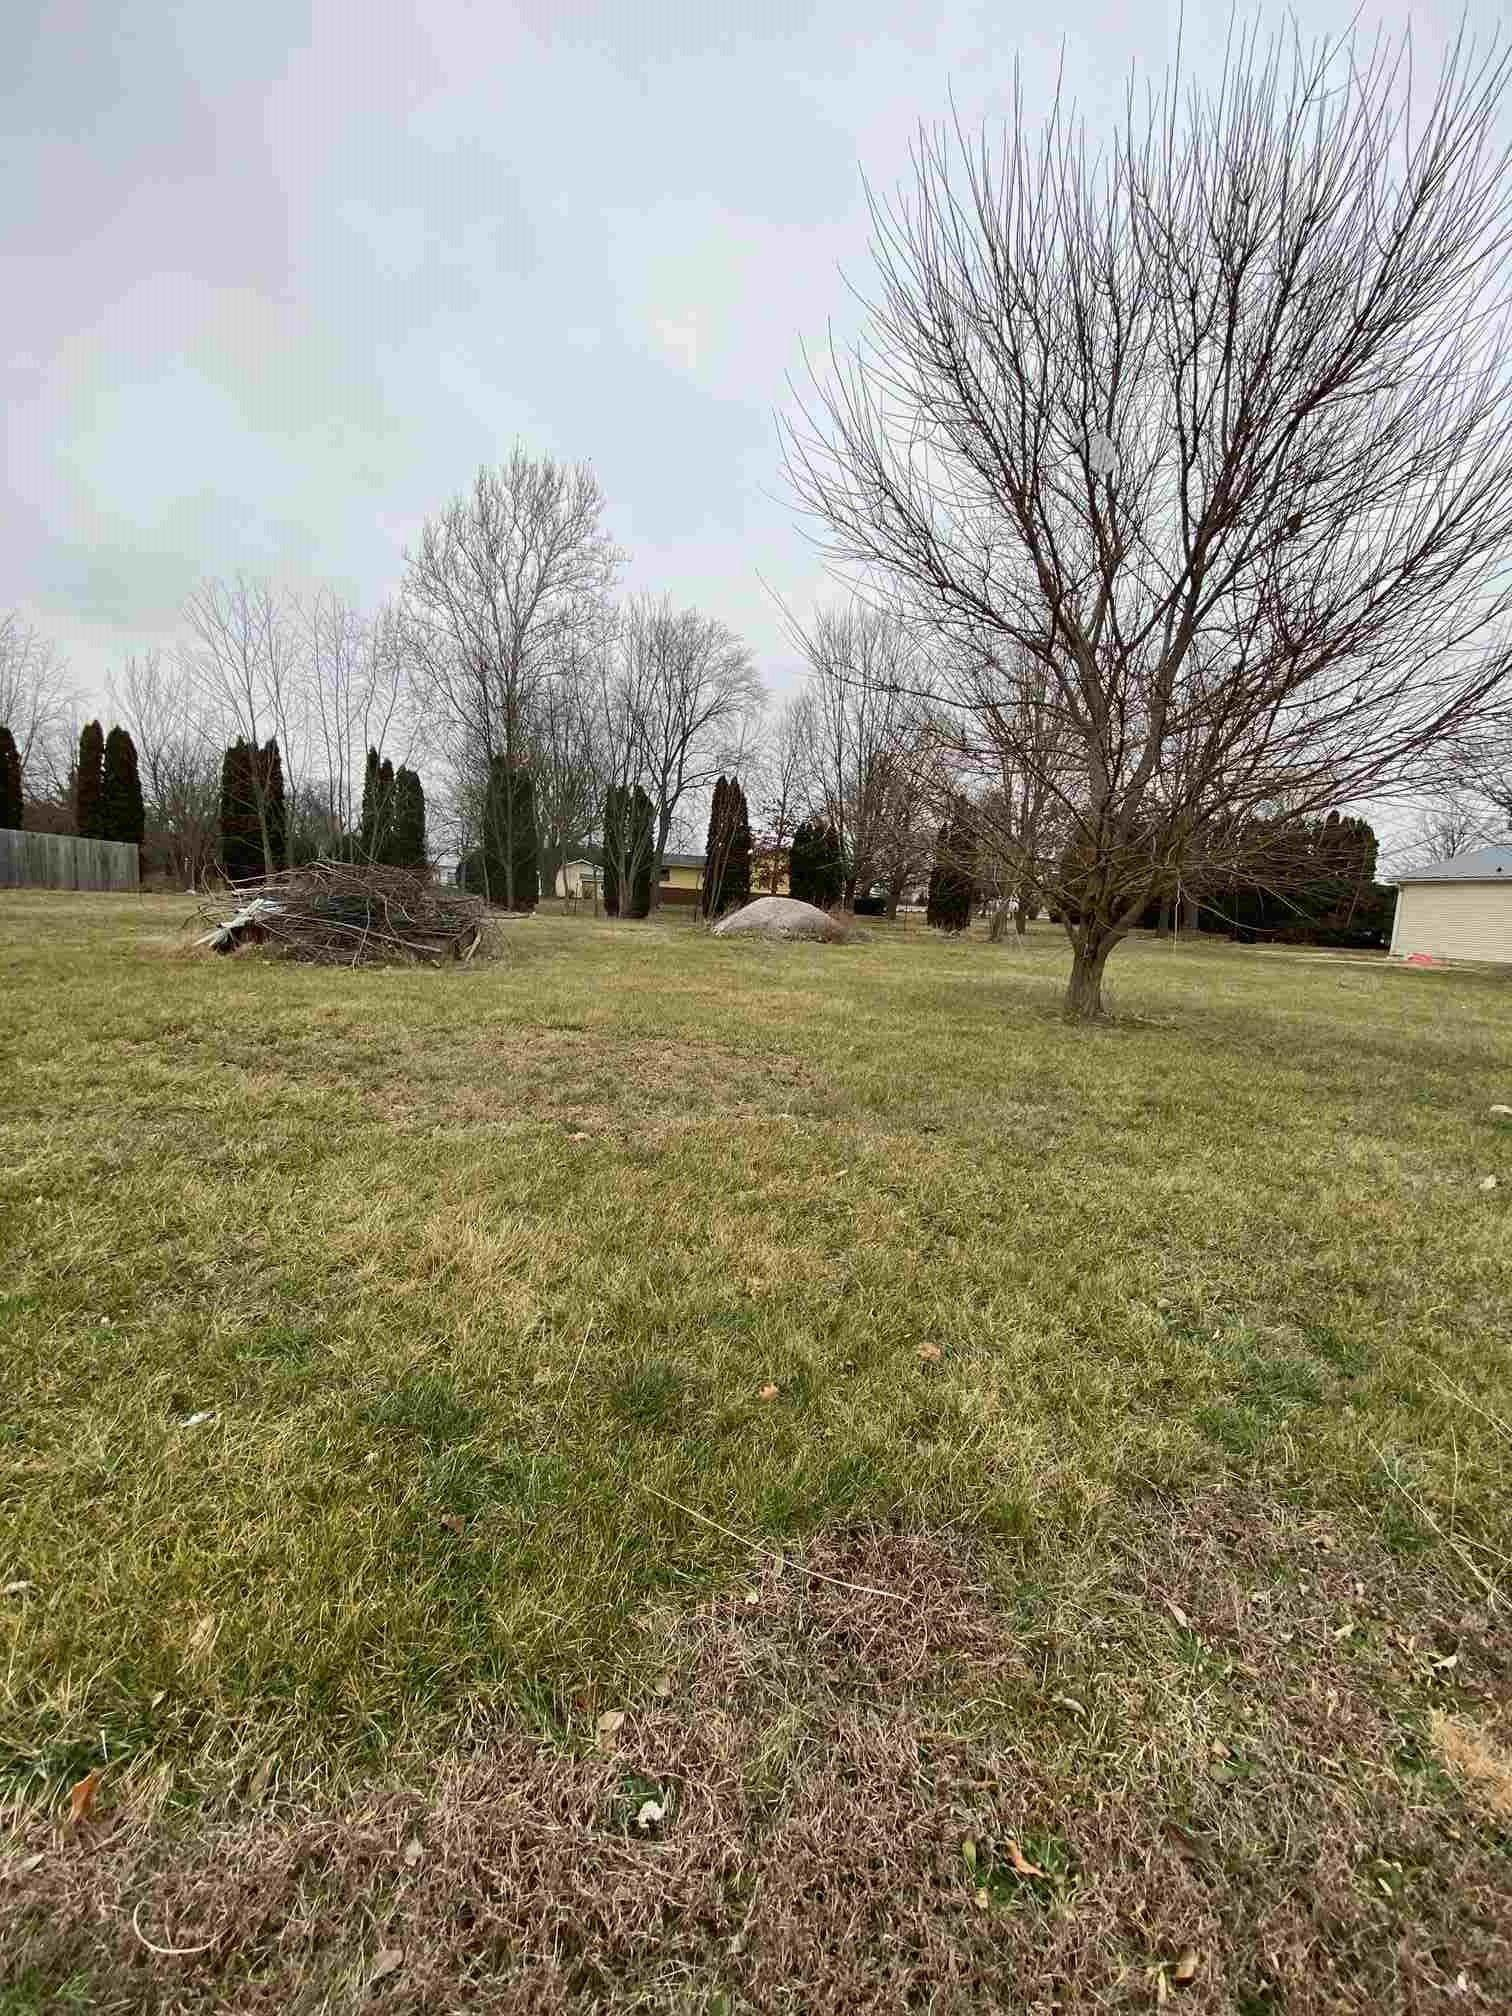 Residential Lots & Land for Sale at TBD Northern Acres Drive Lot 11 Ladoga, Indiana 47905 United States